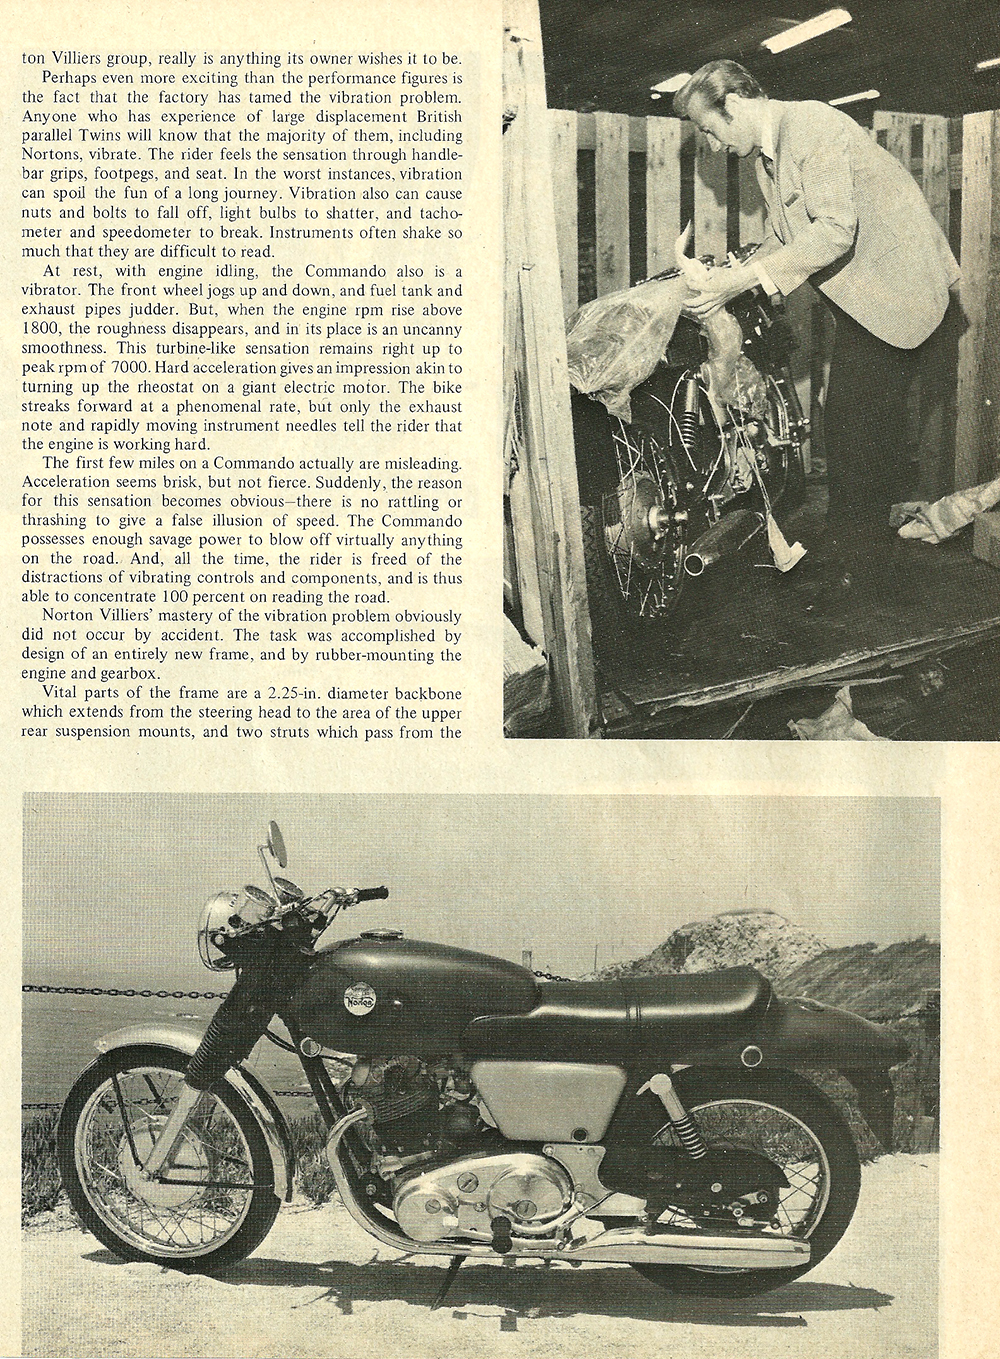 1968+Norton+Commando+750+road+test+02.jpg